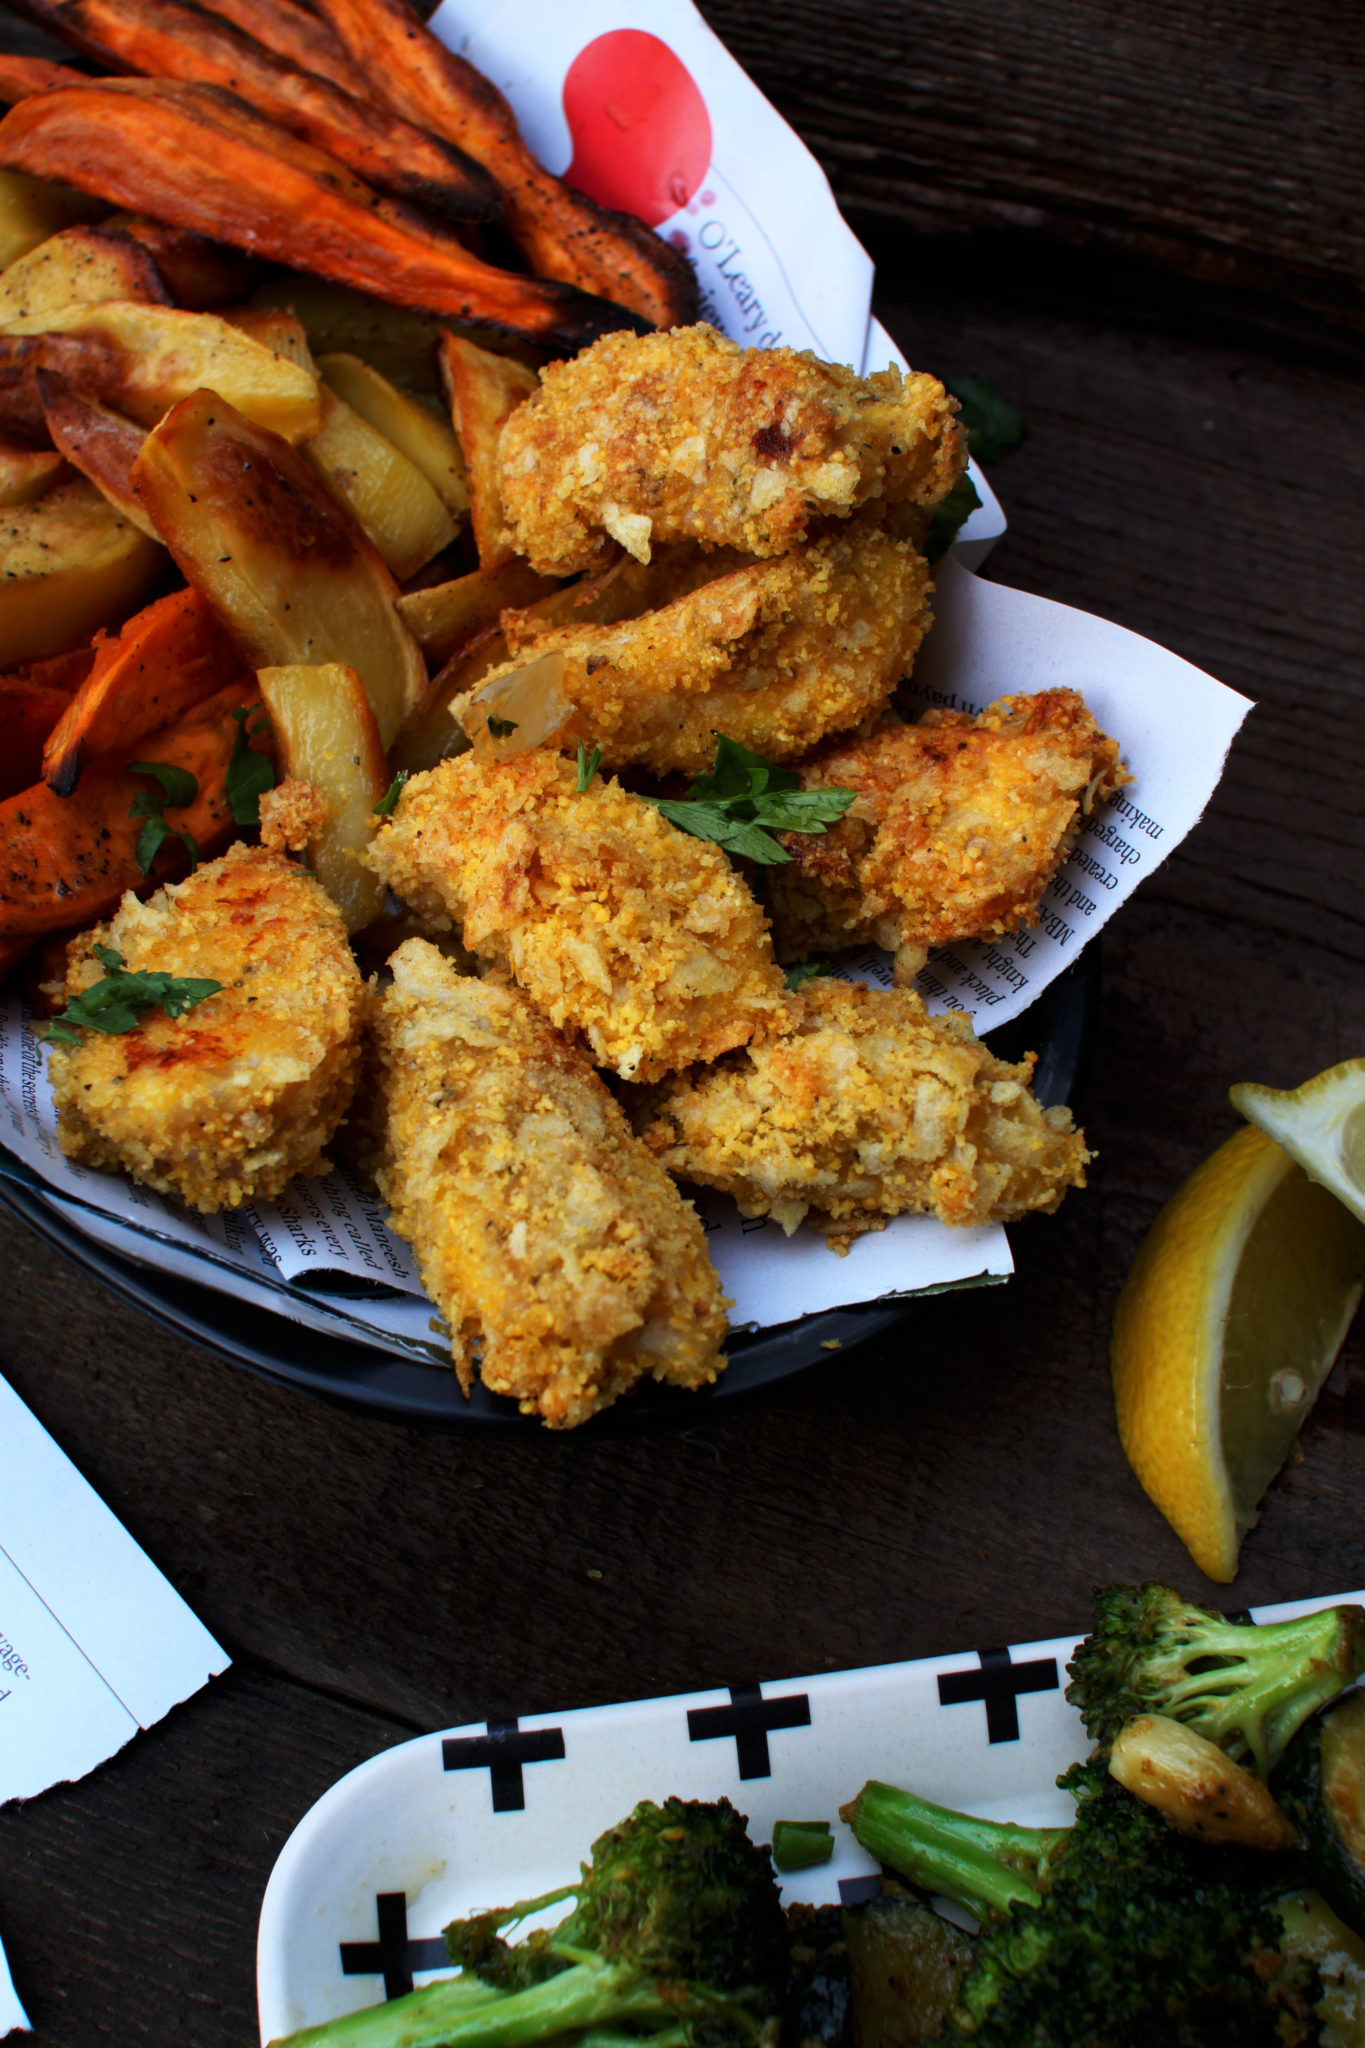 Kid Friendly Fish Sticks with Home Fries & Roasted Veggies